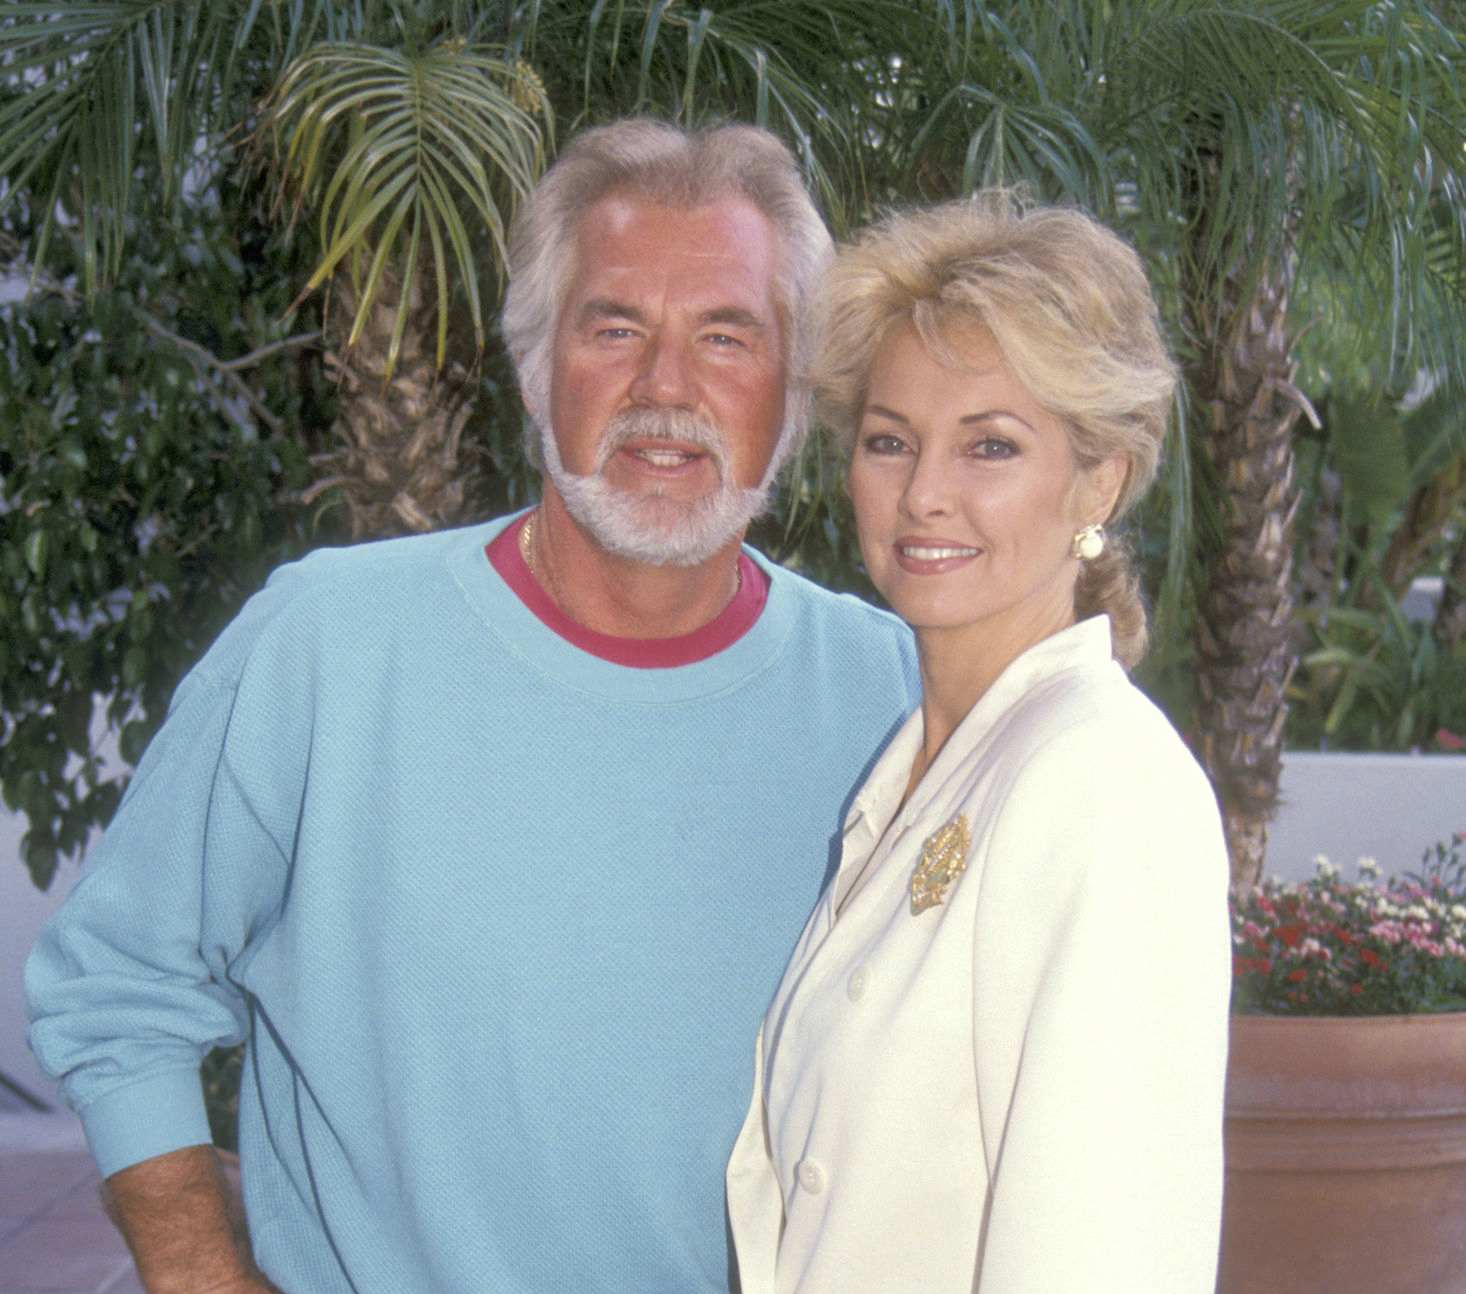 Musician Kenny Rogers and wife Marianne Gordon attend the NBC Fall TCA Press Tour on July 29, 1991 at Universal Hilton Hotel in Universal City, California